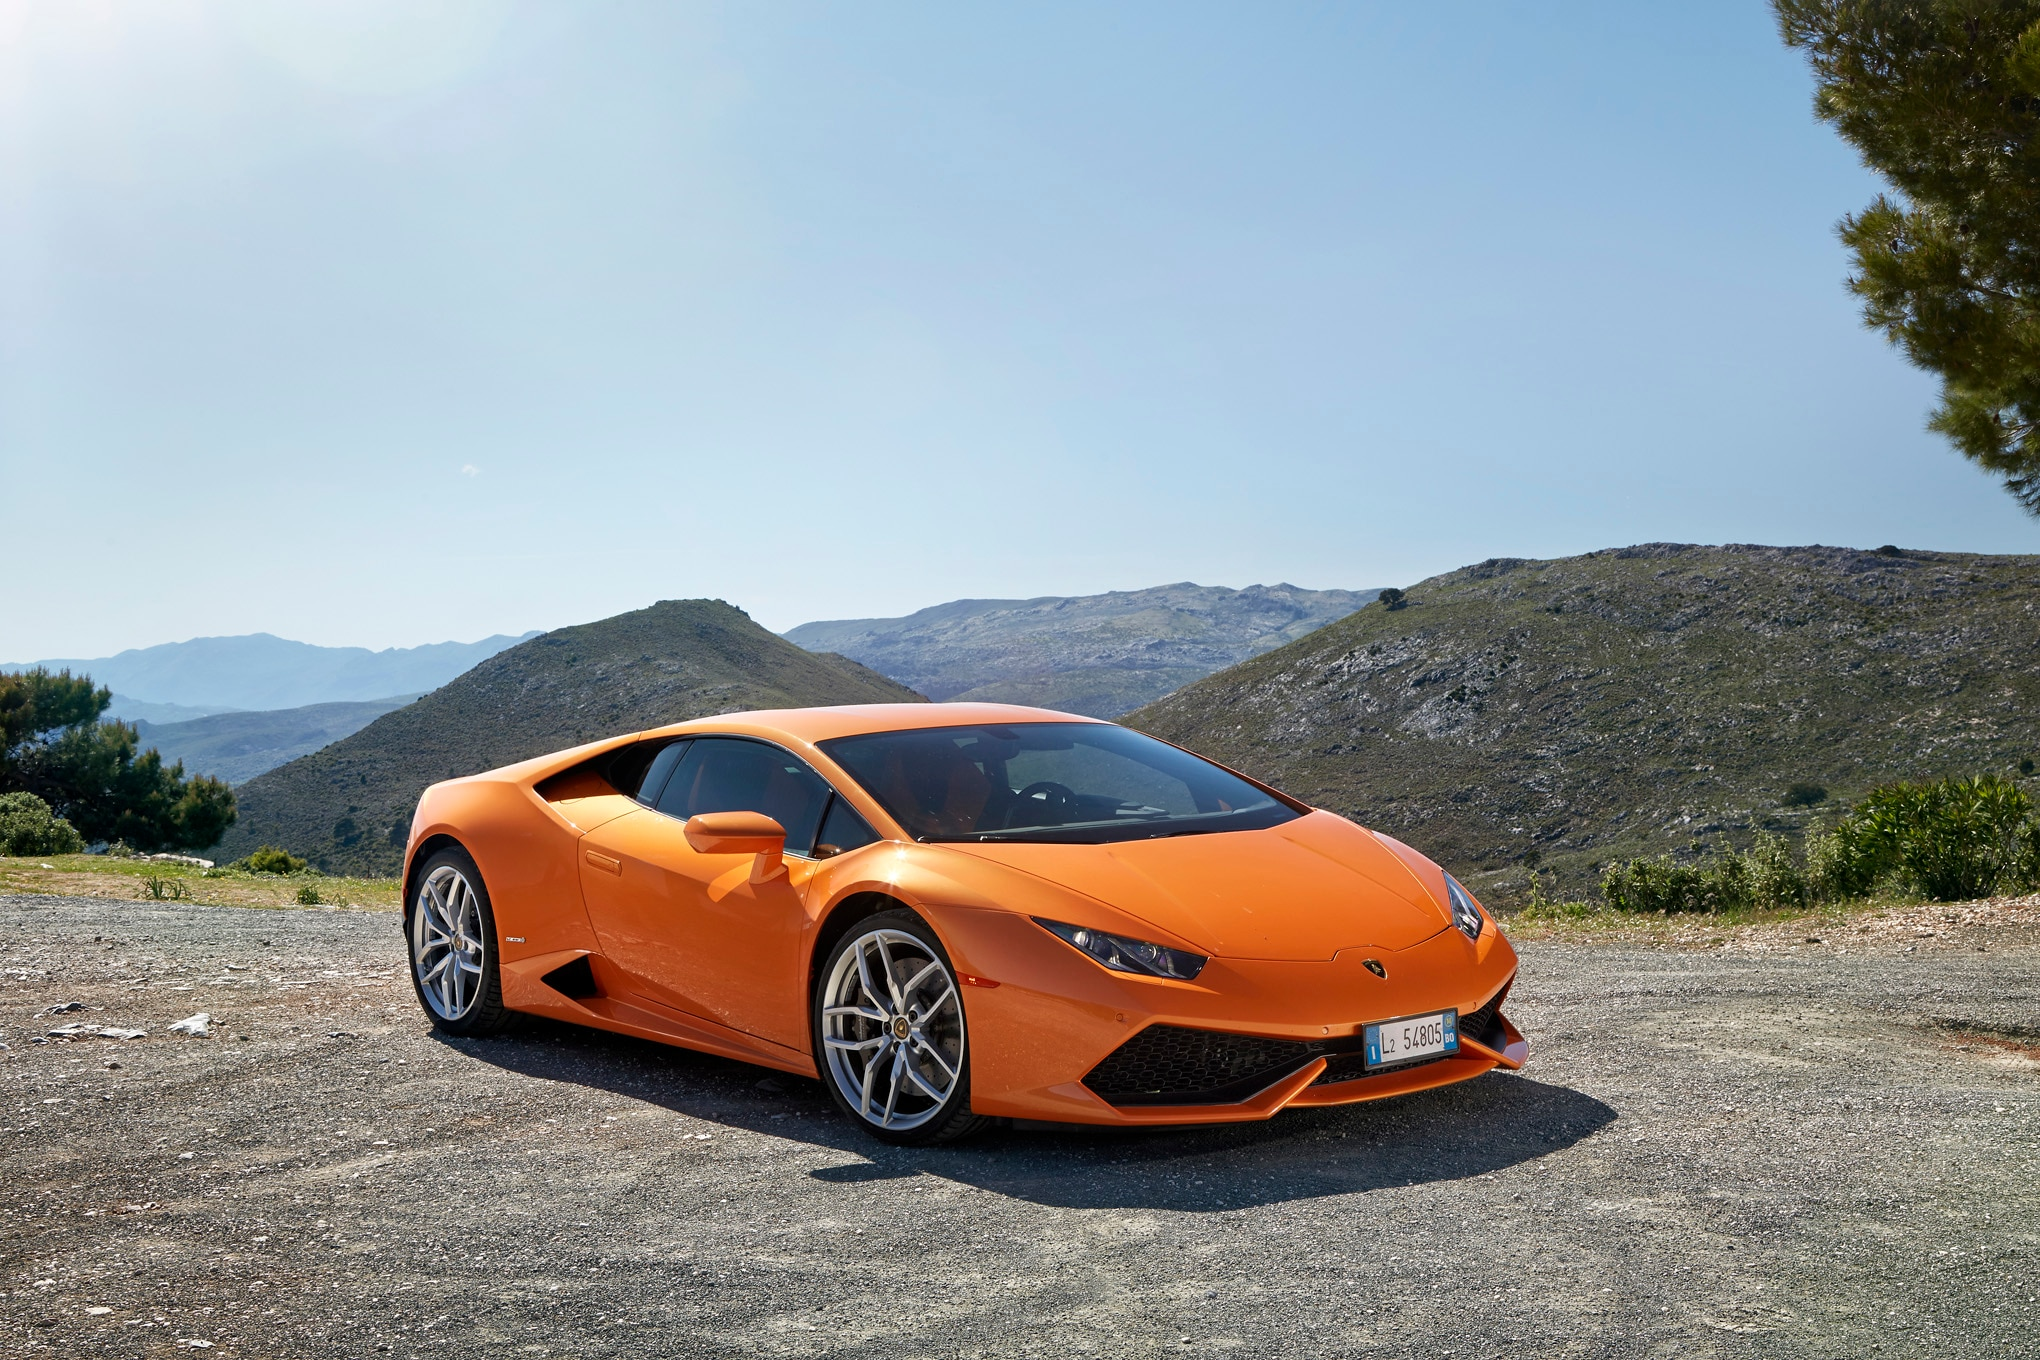 2015-Lamborghini-Huracan-LP-610-4-front-three-quarters-in-motion Fabulous Lamborghini Huracan Need for Speed 2015 Cars Trend